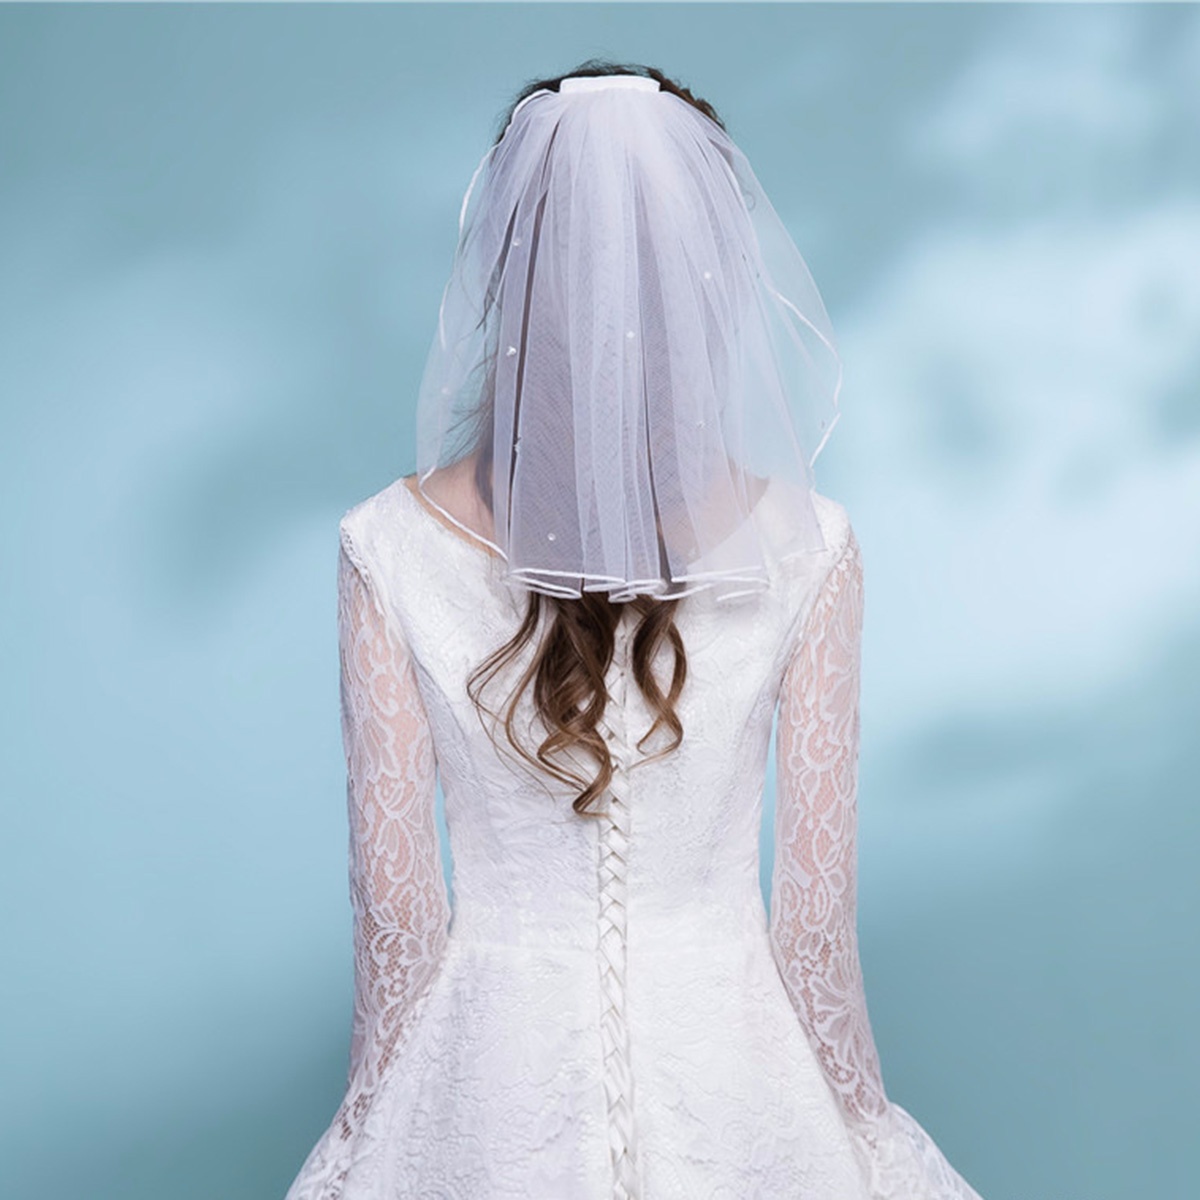 Womens Short Tulle Bridal Veil Wedding Veil With Comb Crystal Ribbon Edge For Bride Flower Girl Wedding Party Photography(White)